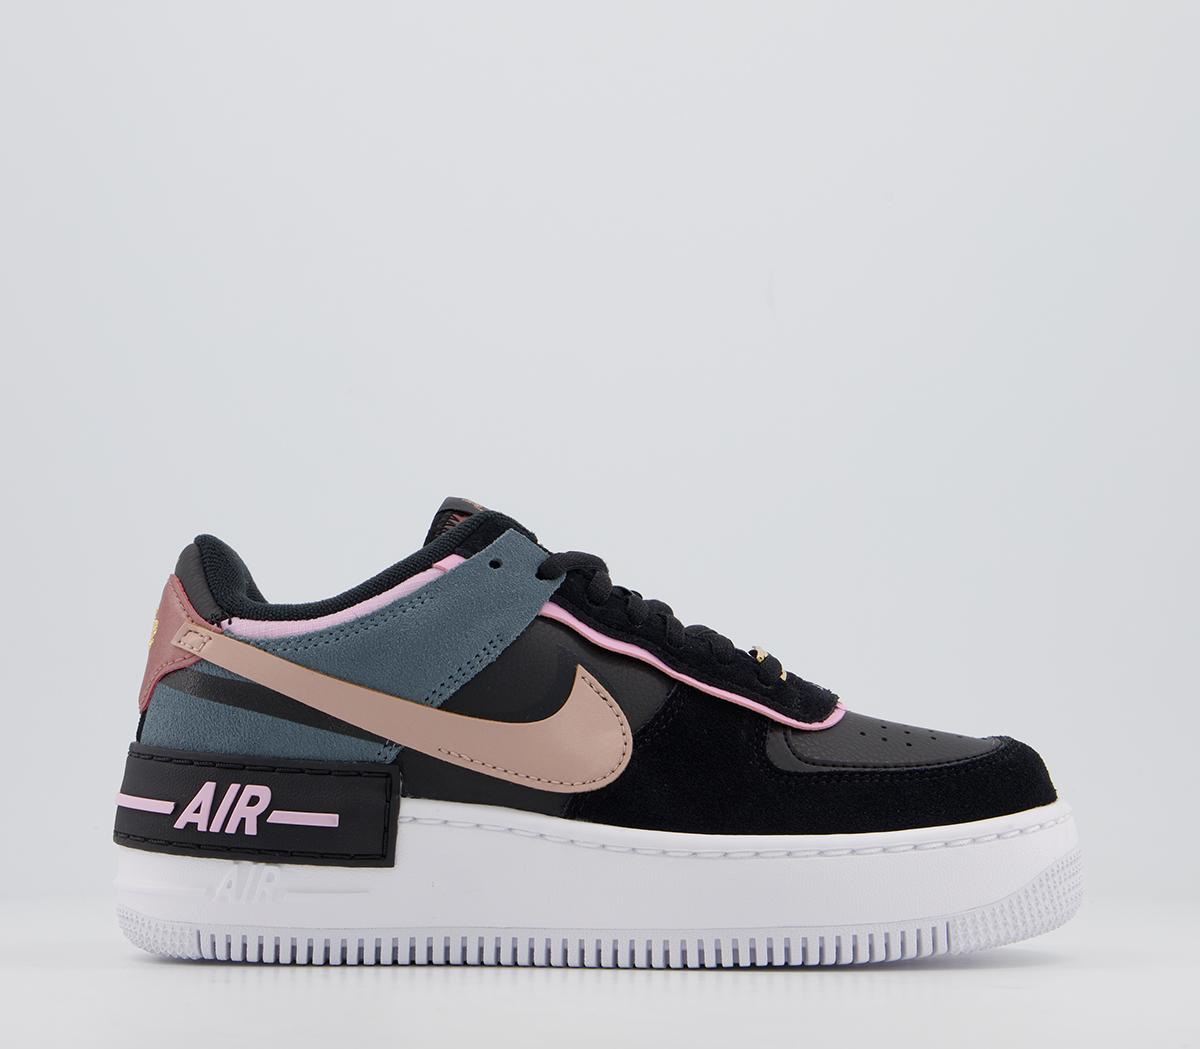 Nike Air Force 1 Shadow Trainers Black Metallic Red Bronze Light Artic Pink Hers Trainers Nike dominates the sportswear industry with a fresh, stylish approach to casual apparel. air force 1 shadow trainers